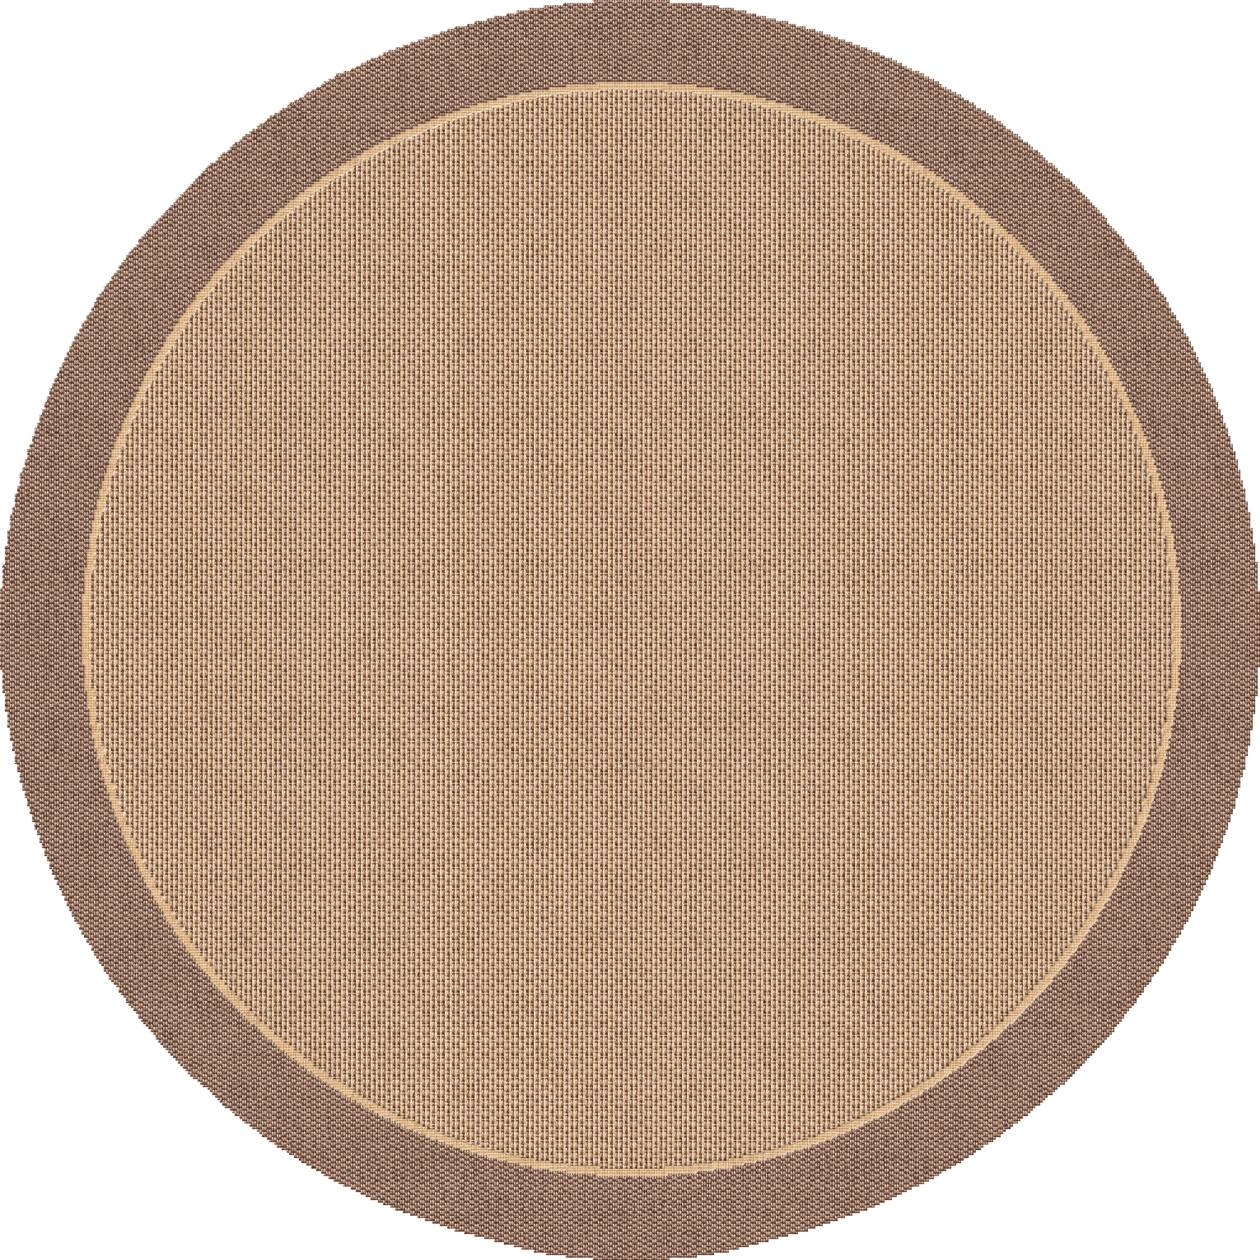 Dynamic Rugs Piazza Modern Brown 2746 Area Rug